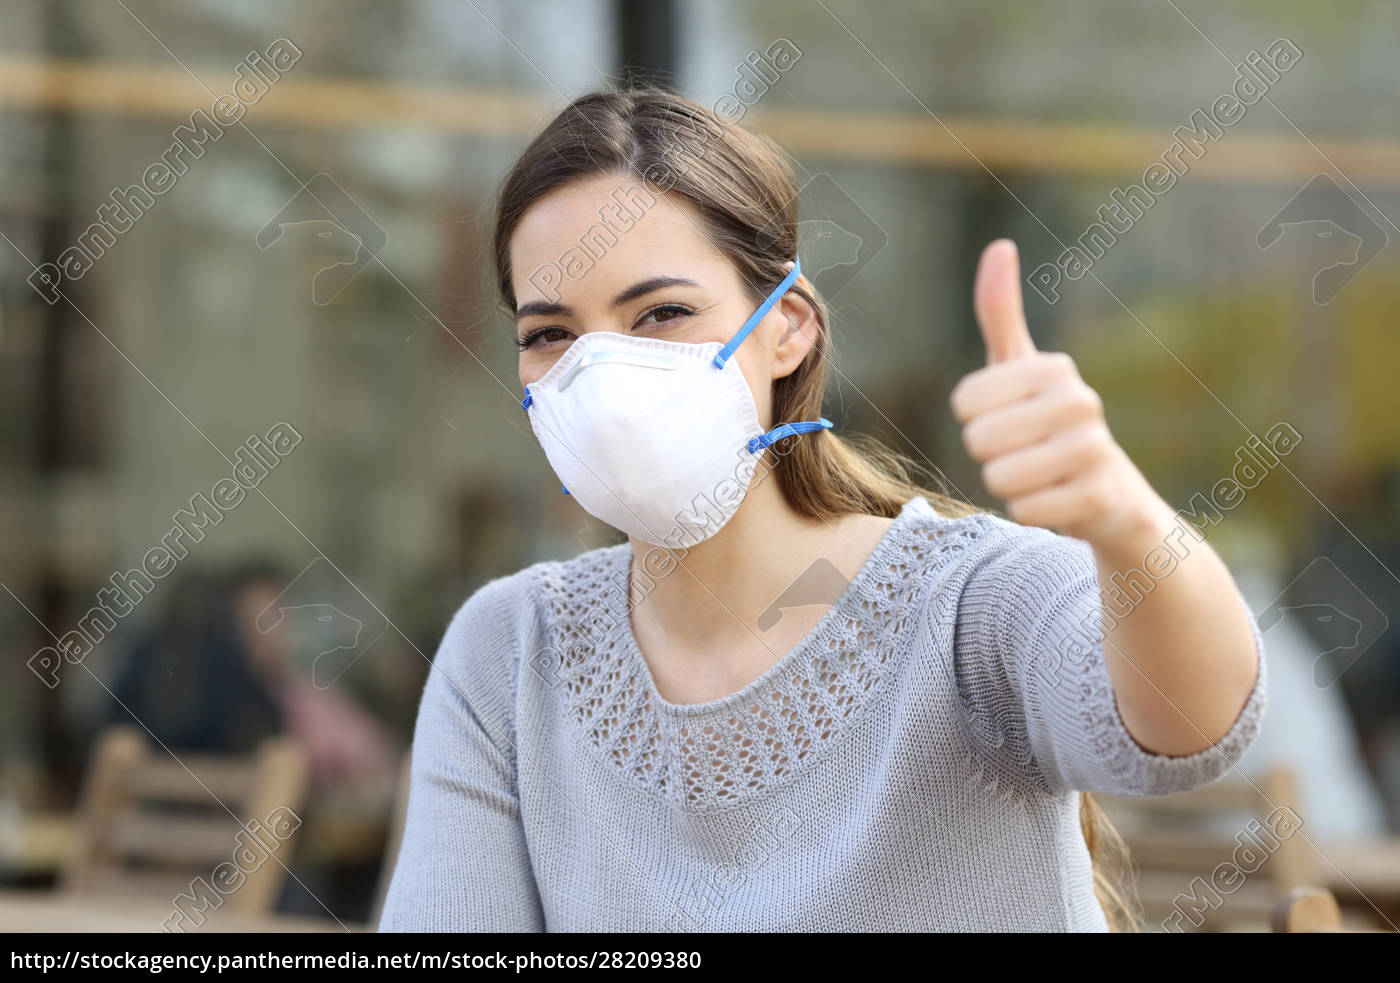 woman, doing, thumbs, up, wearing, protective - 28209380